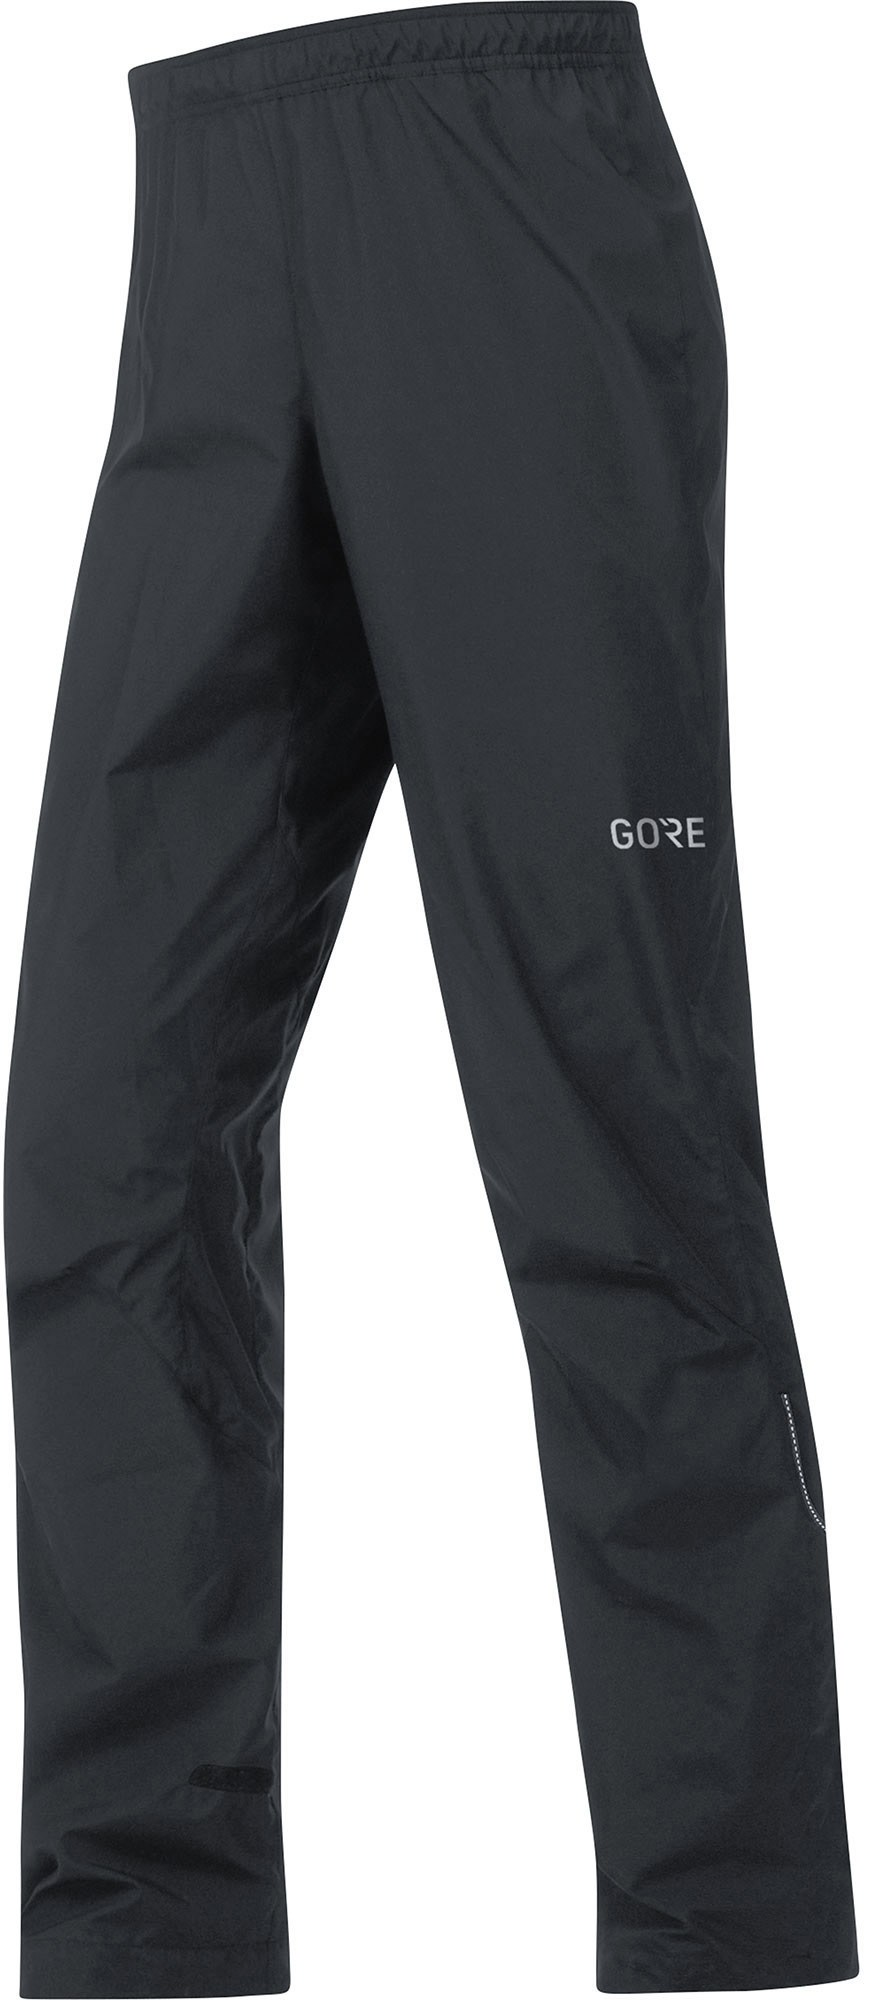 GORE BIKE WEAR C3 GORE WINDSTOPPER Bike Pants - Men's